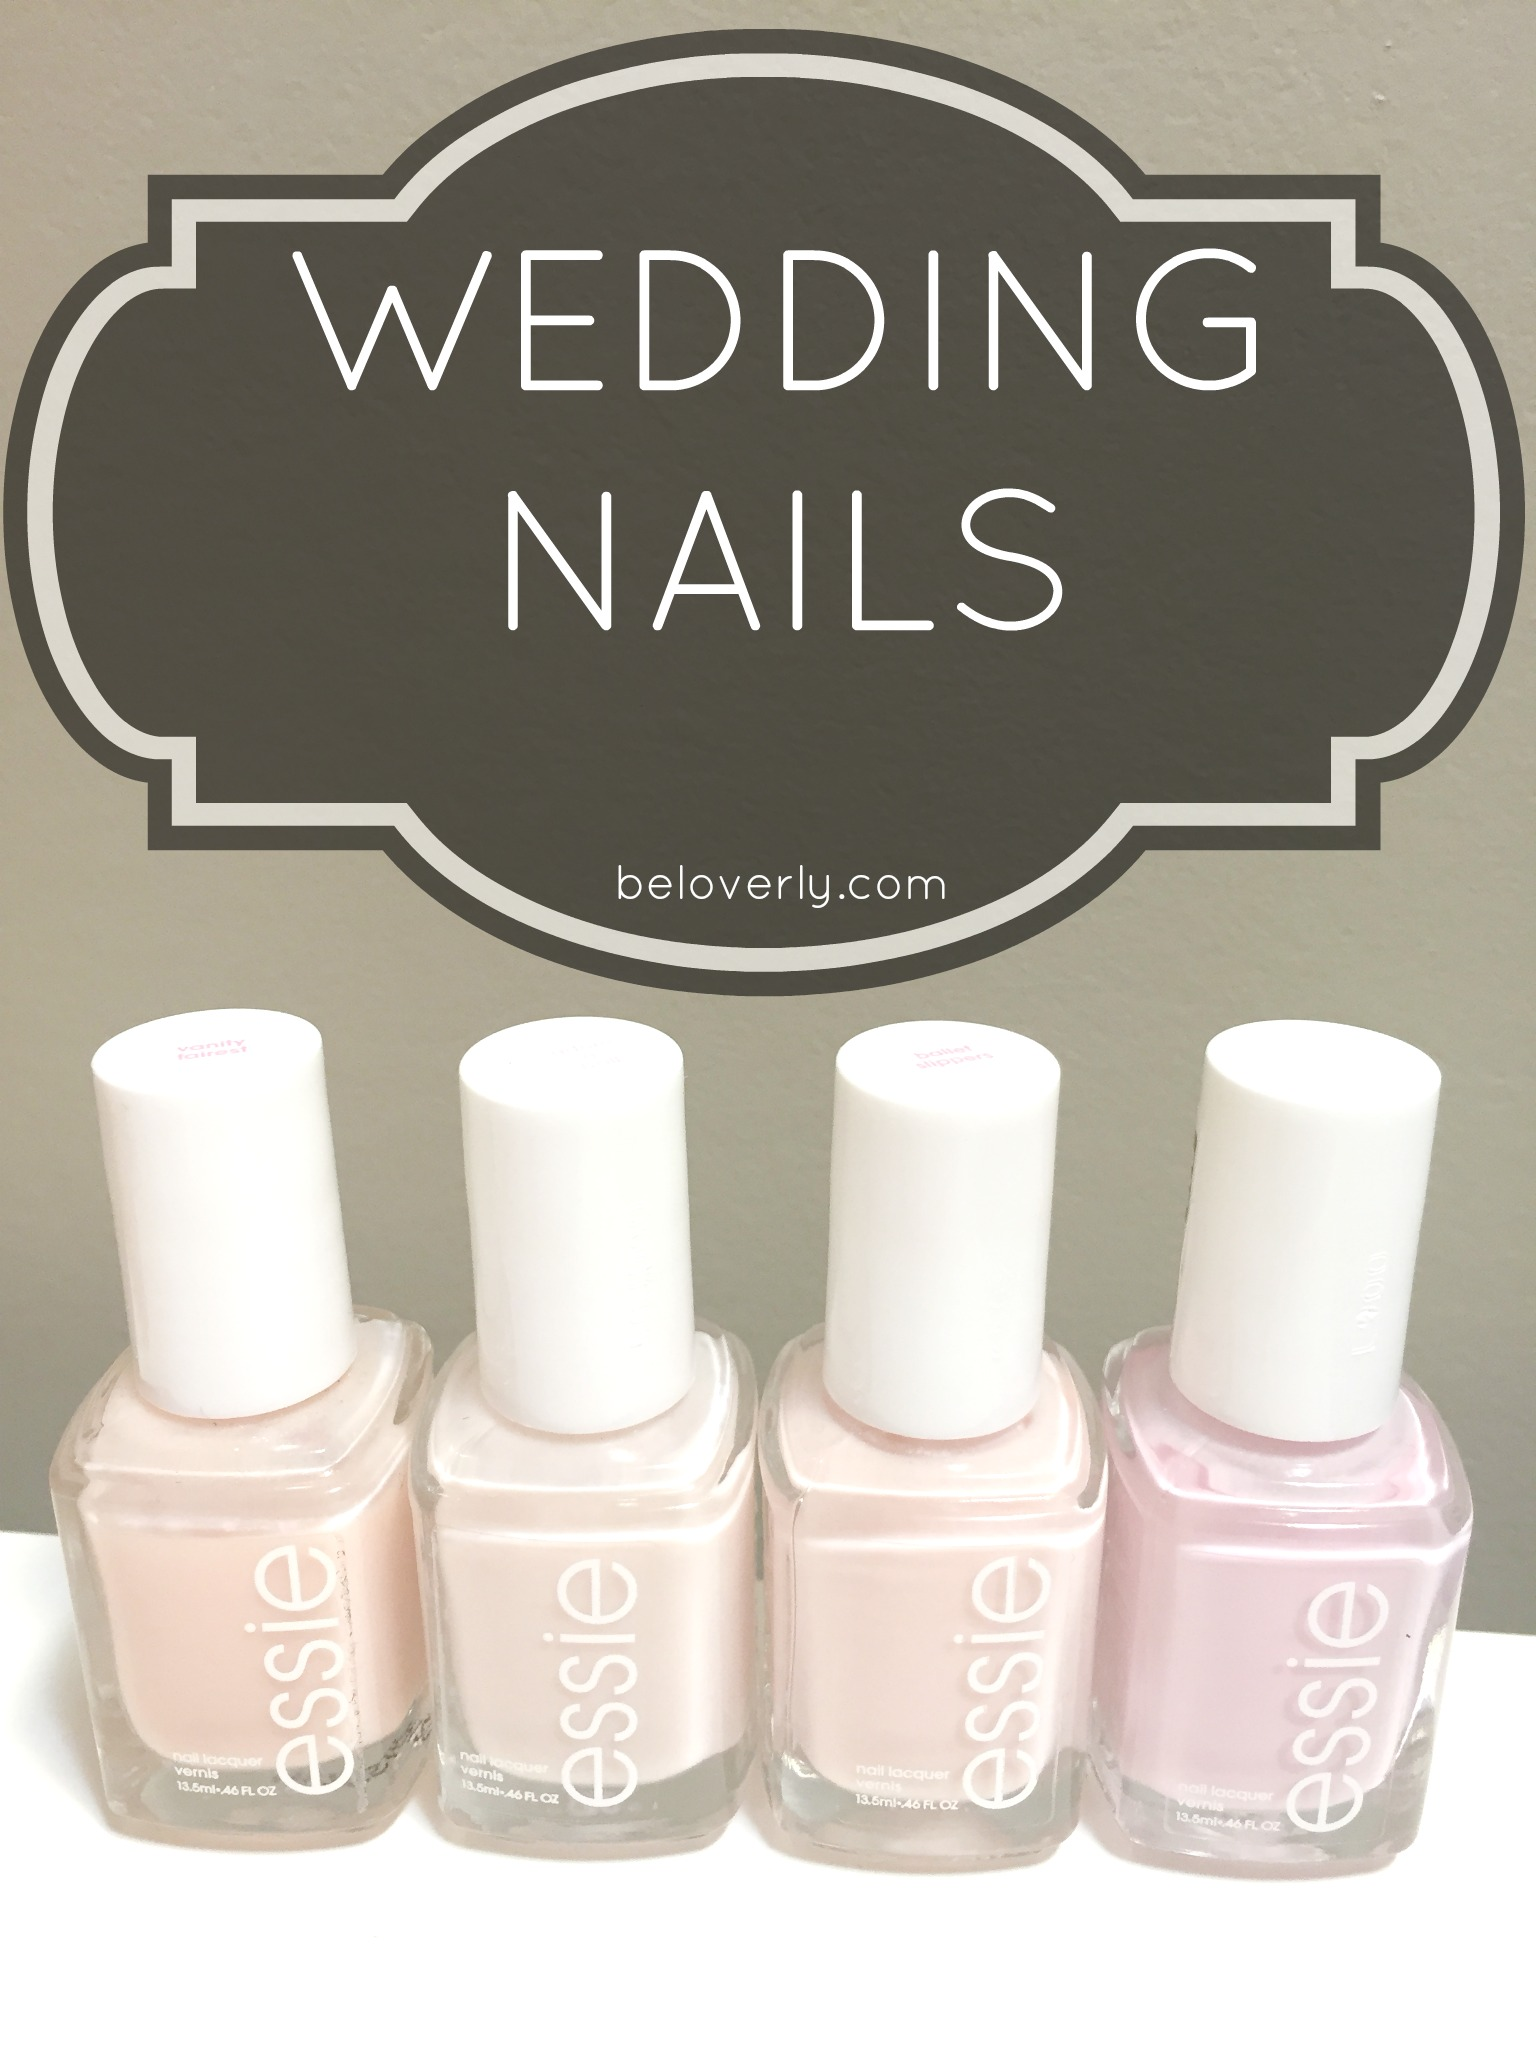 weddingnails2